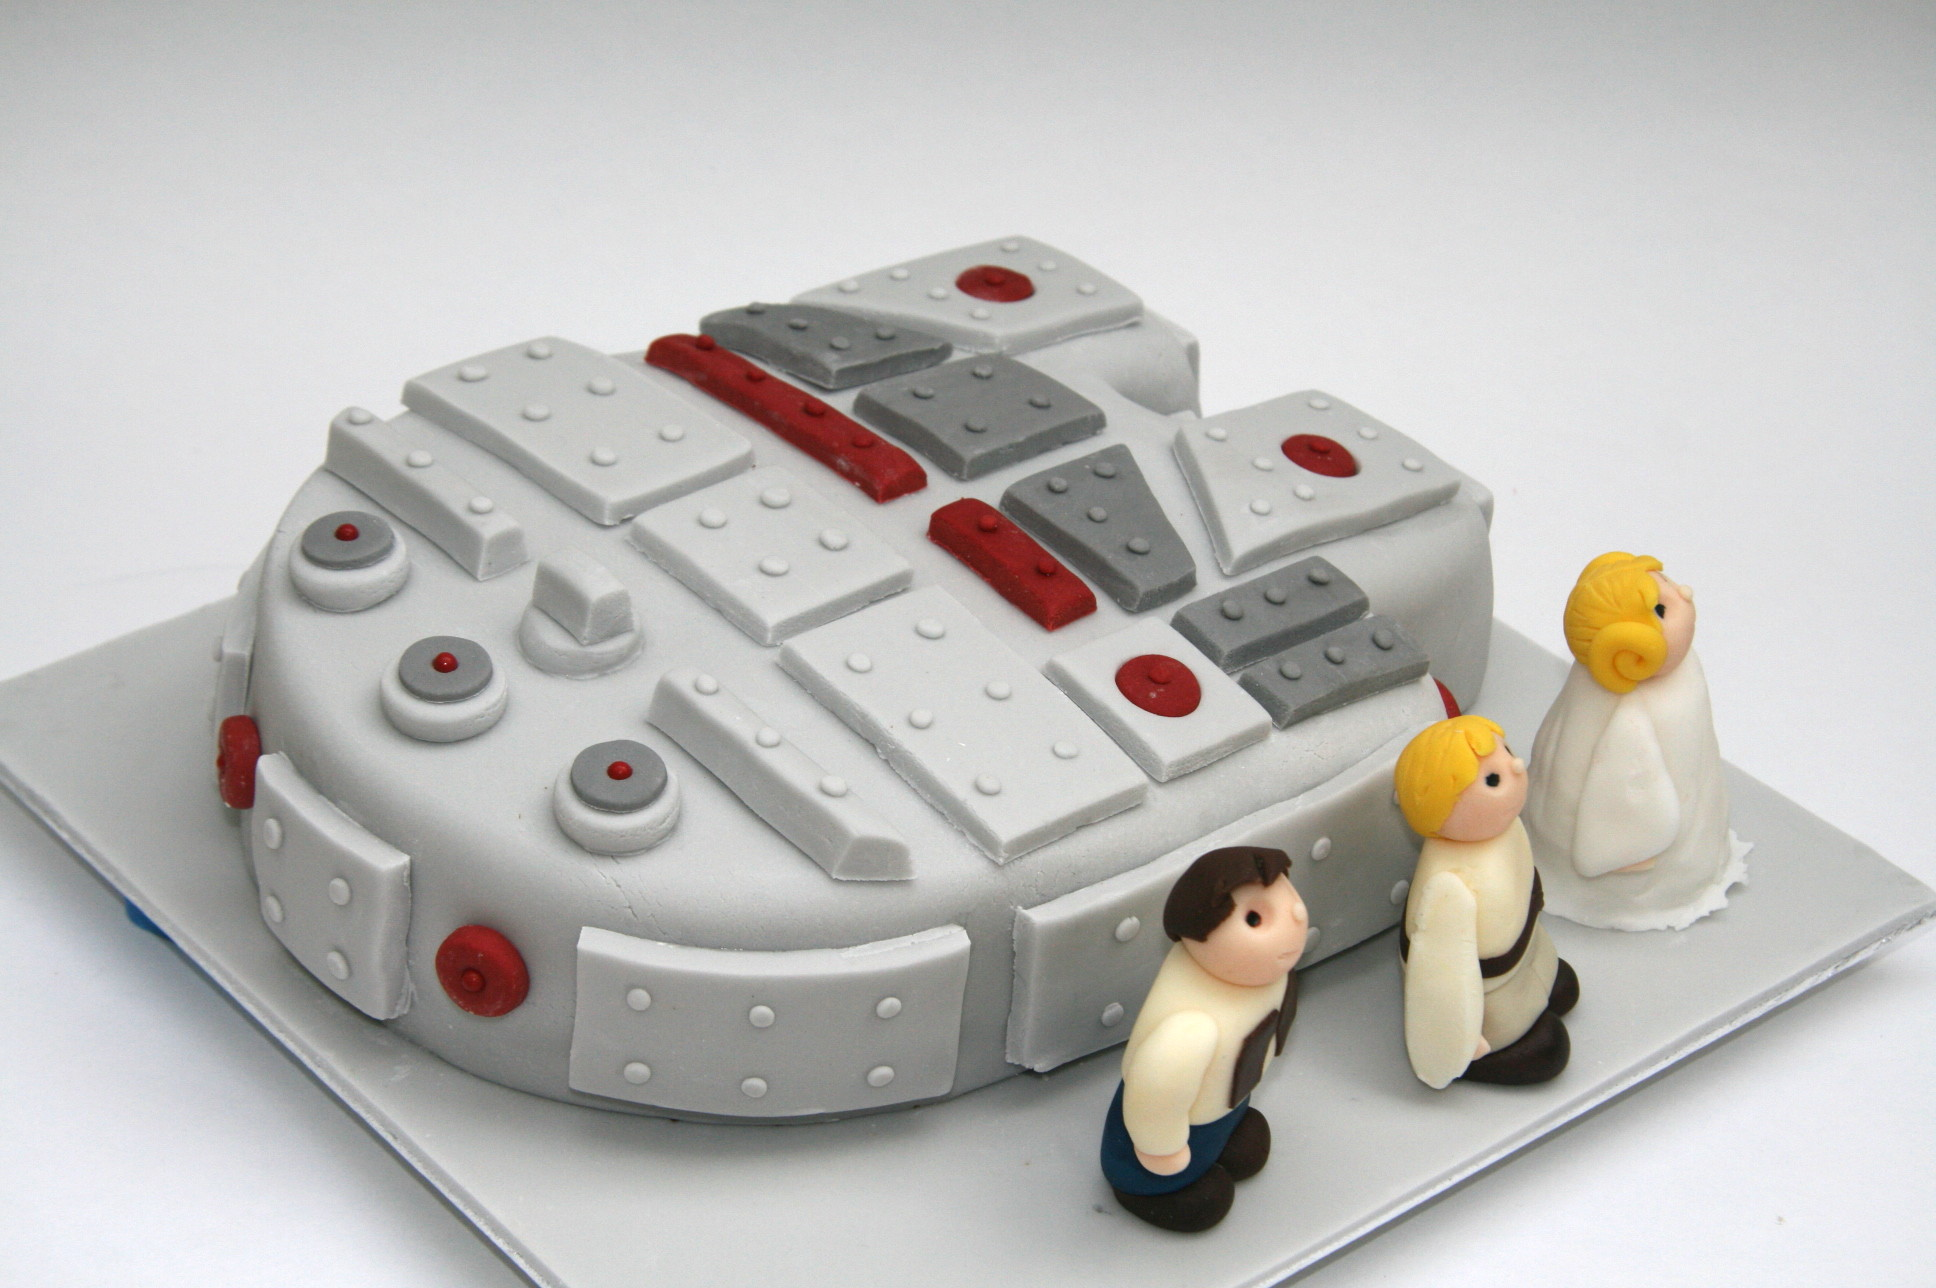 Star Wars Space Ship Cake May The Force Be With You